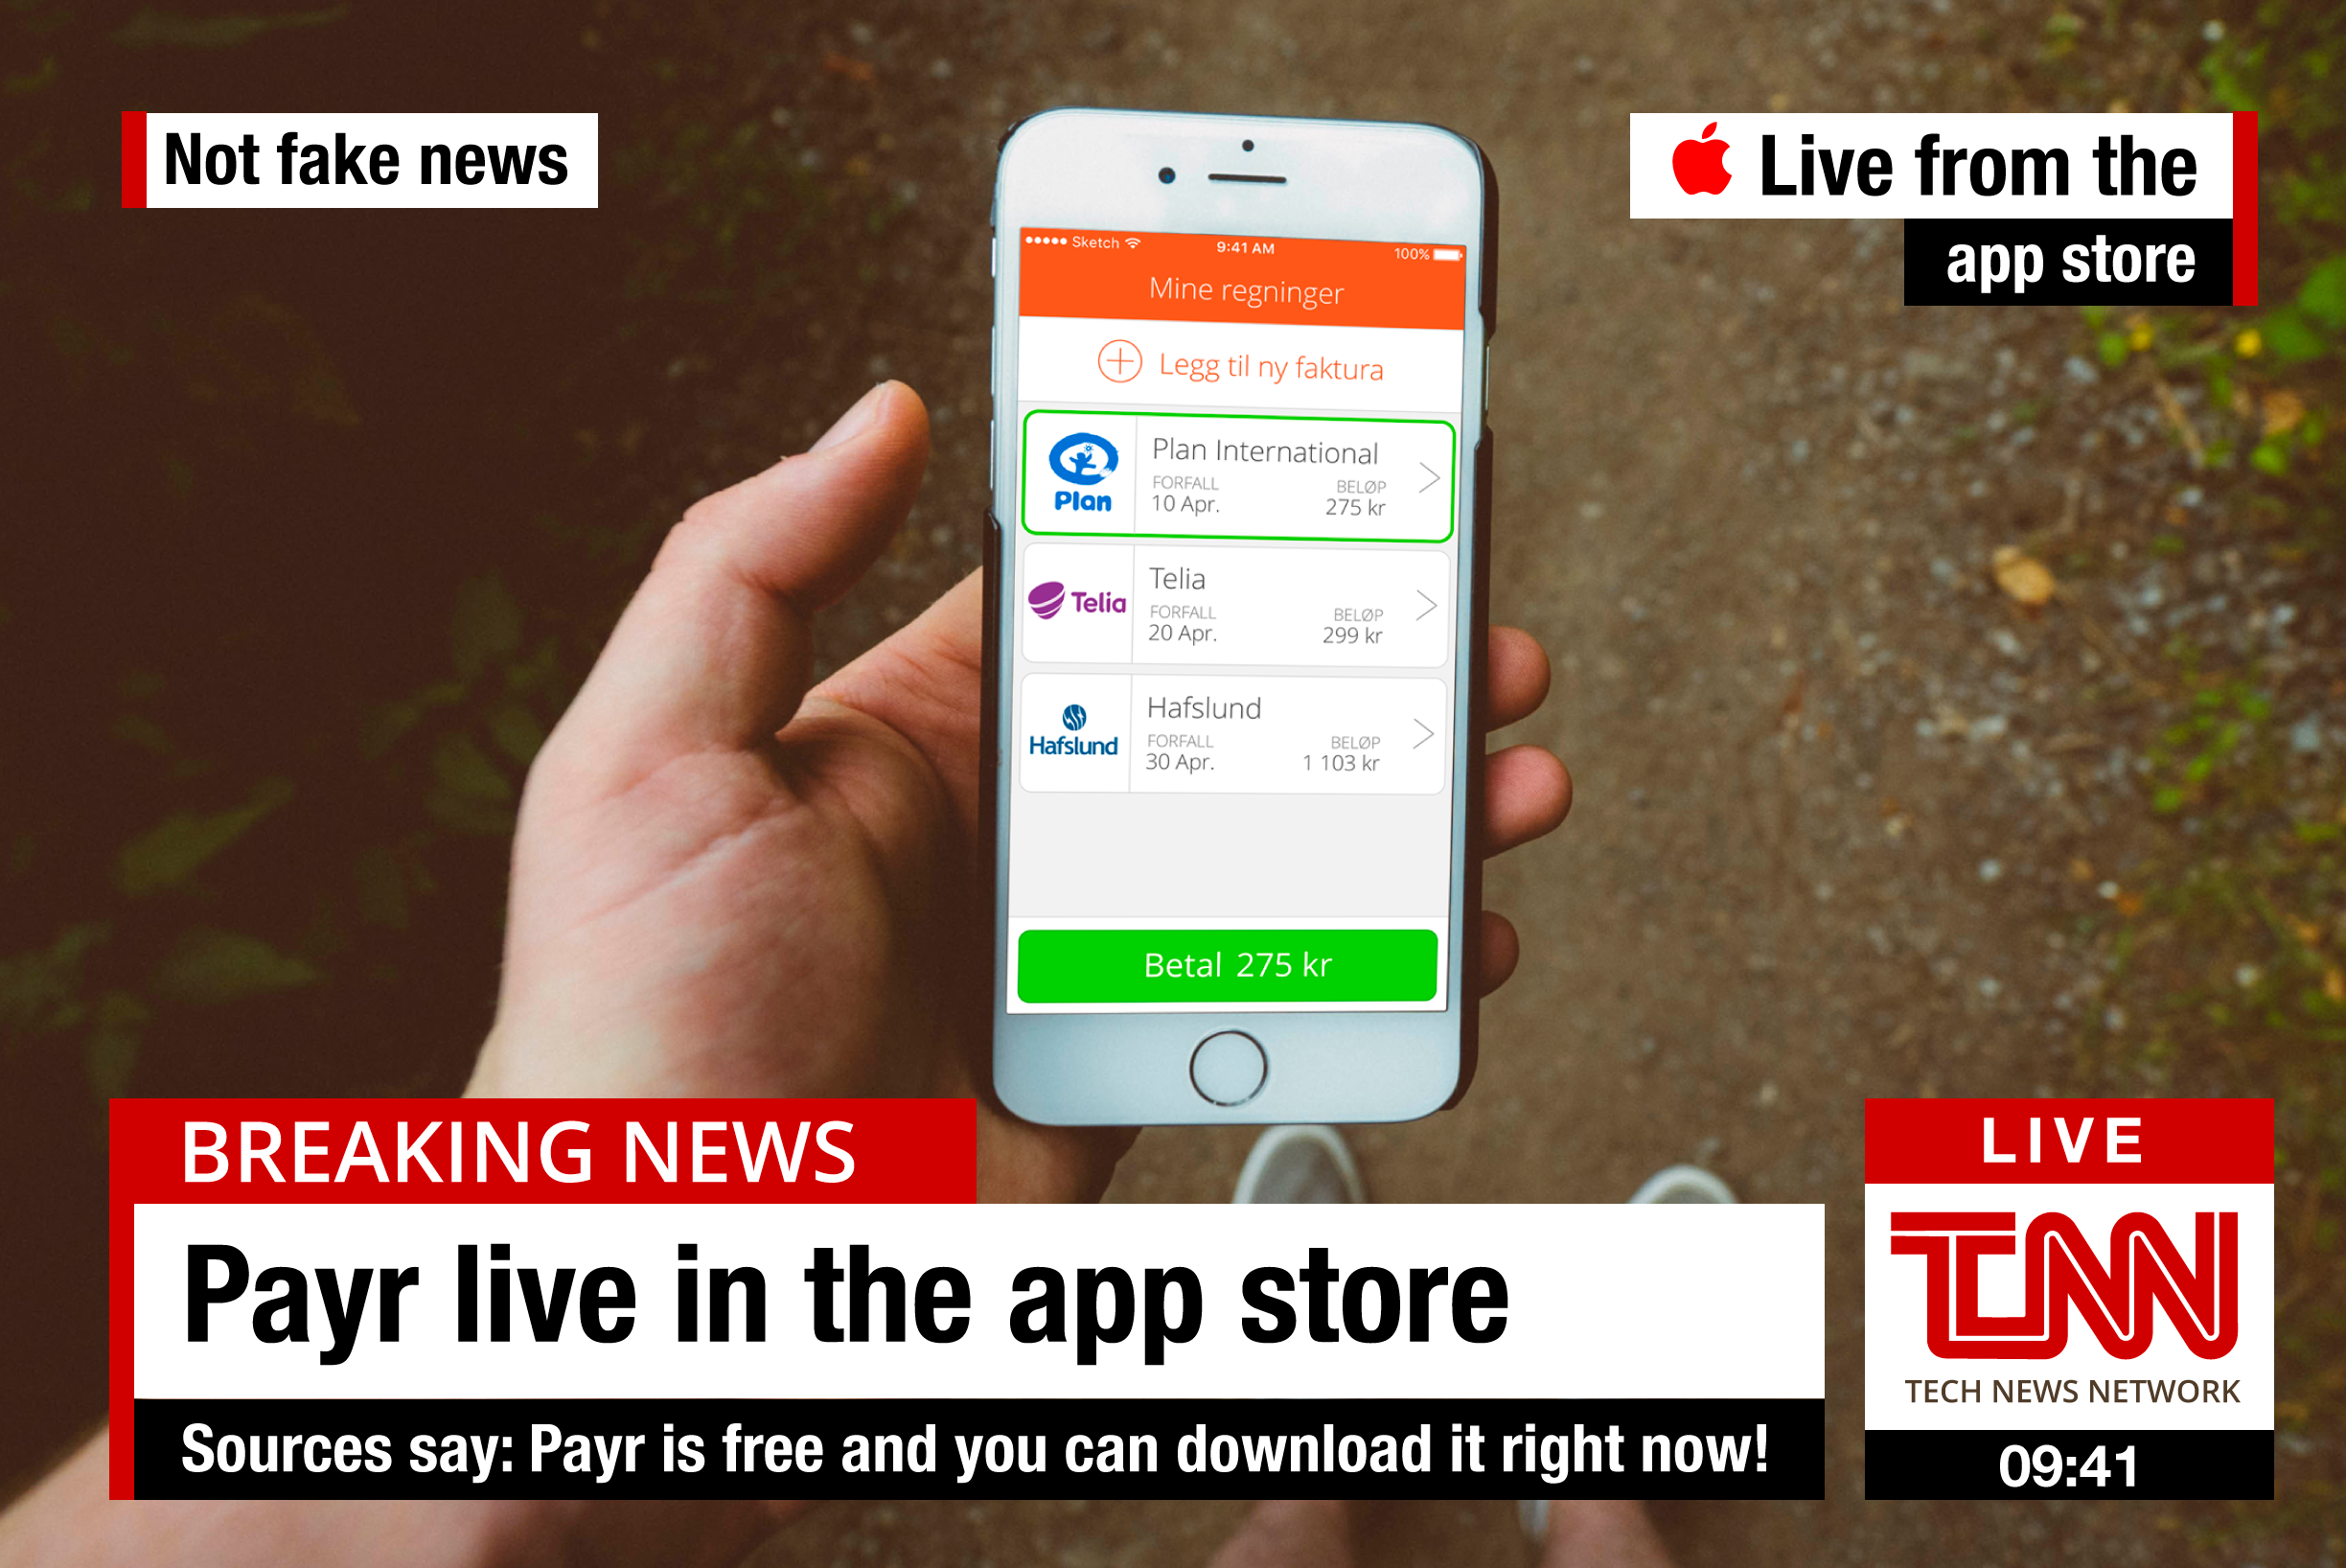 news-payr-is-live.png